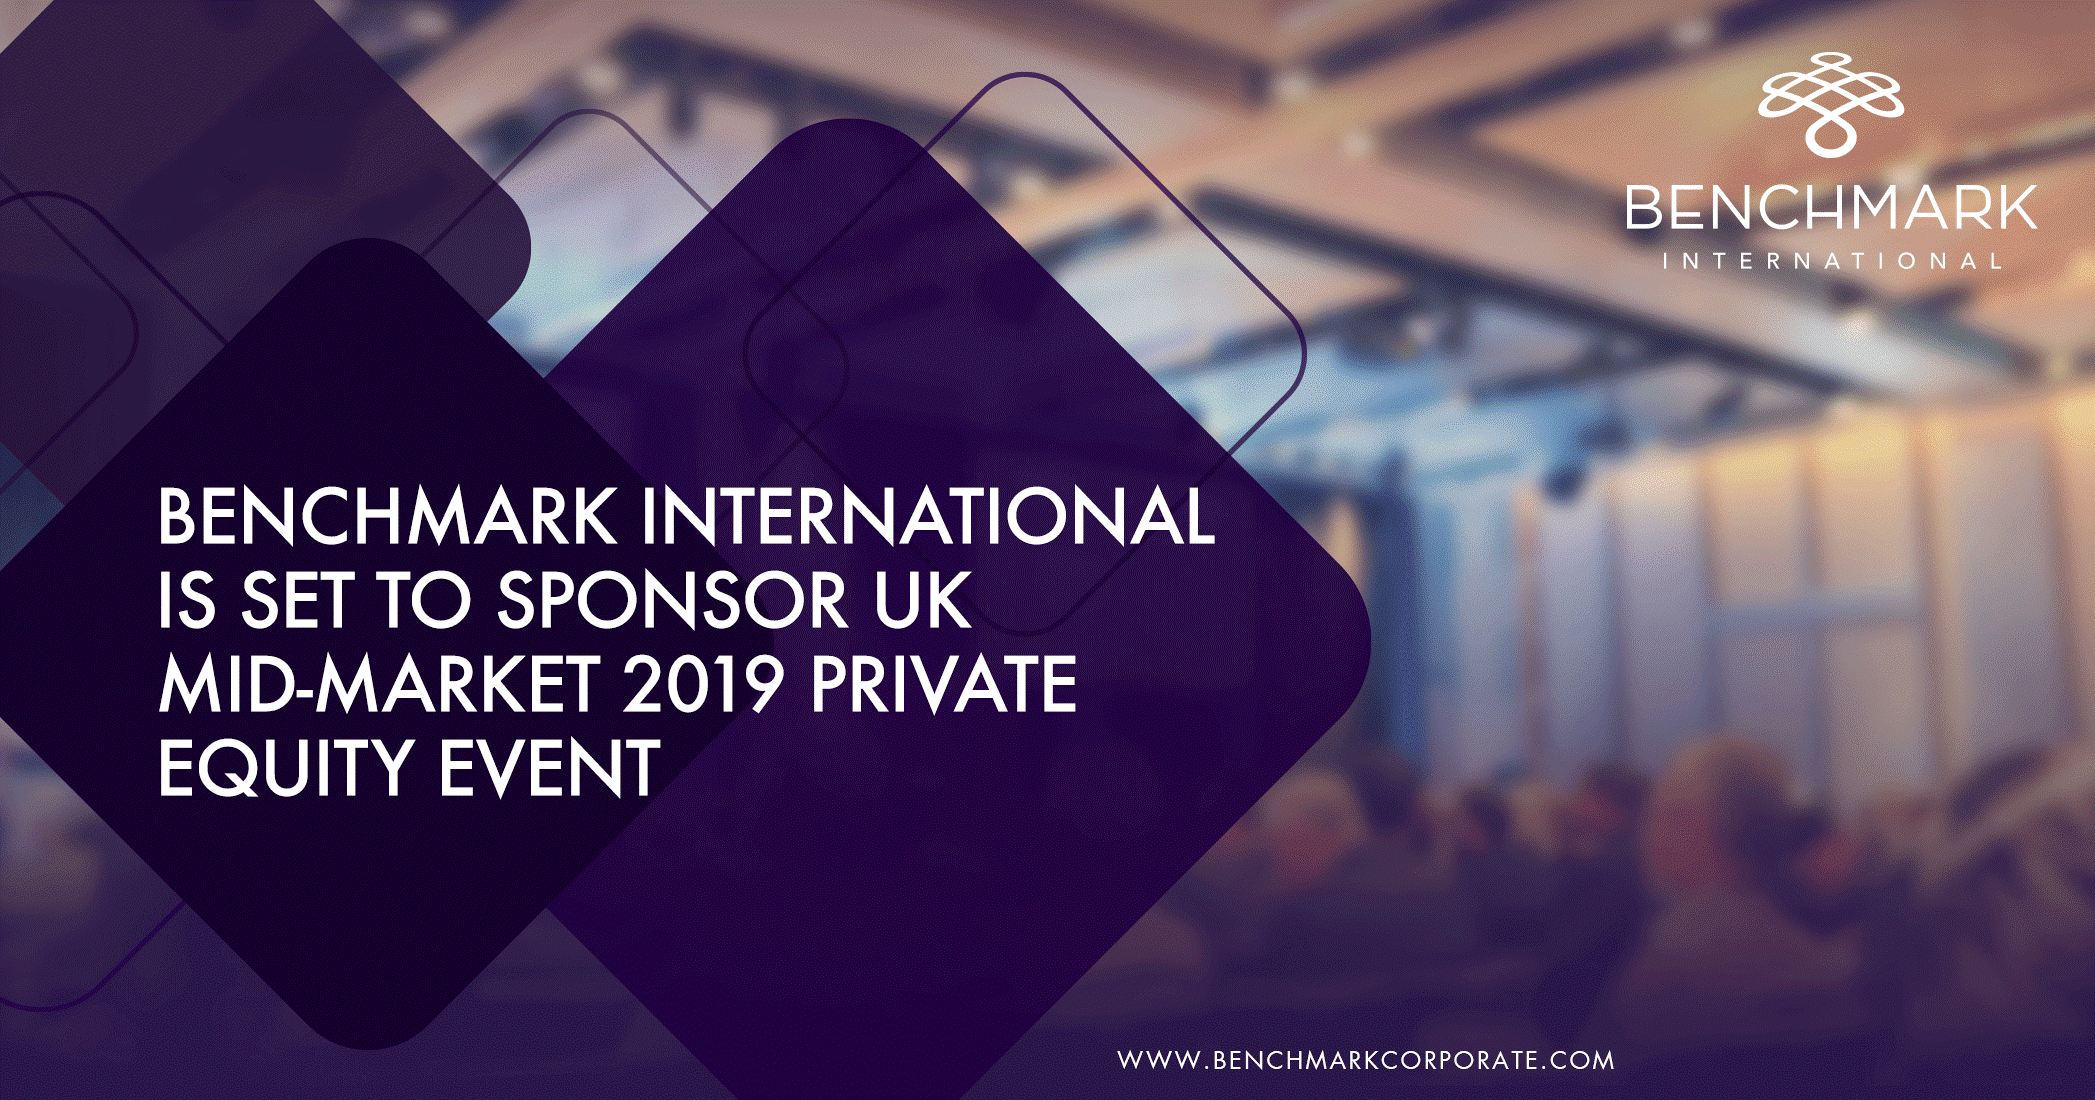 Benchmark International is Set to Sponsor UK Mid-Market 2019 Private Equity Event